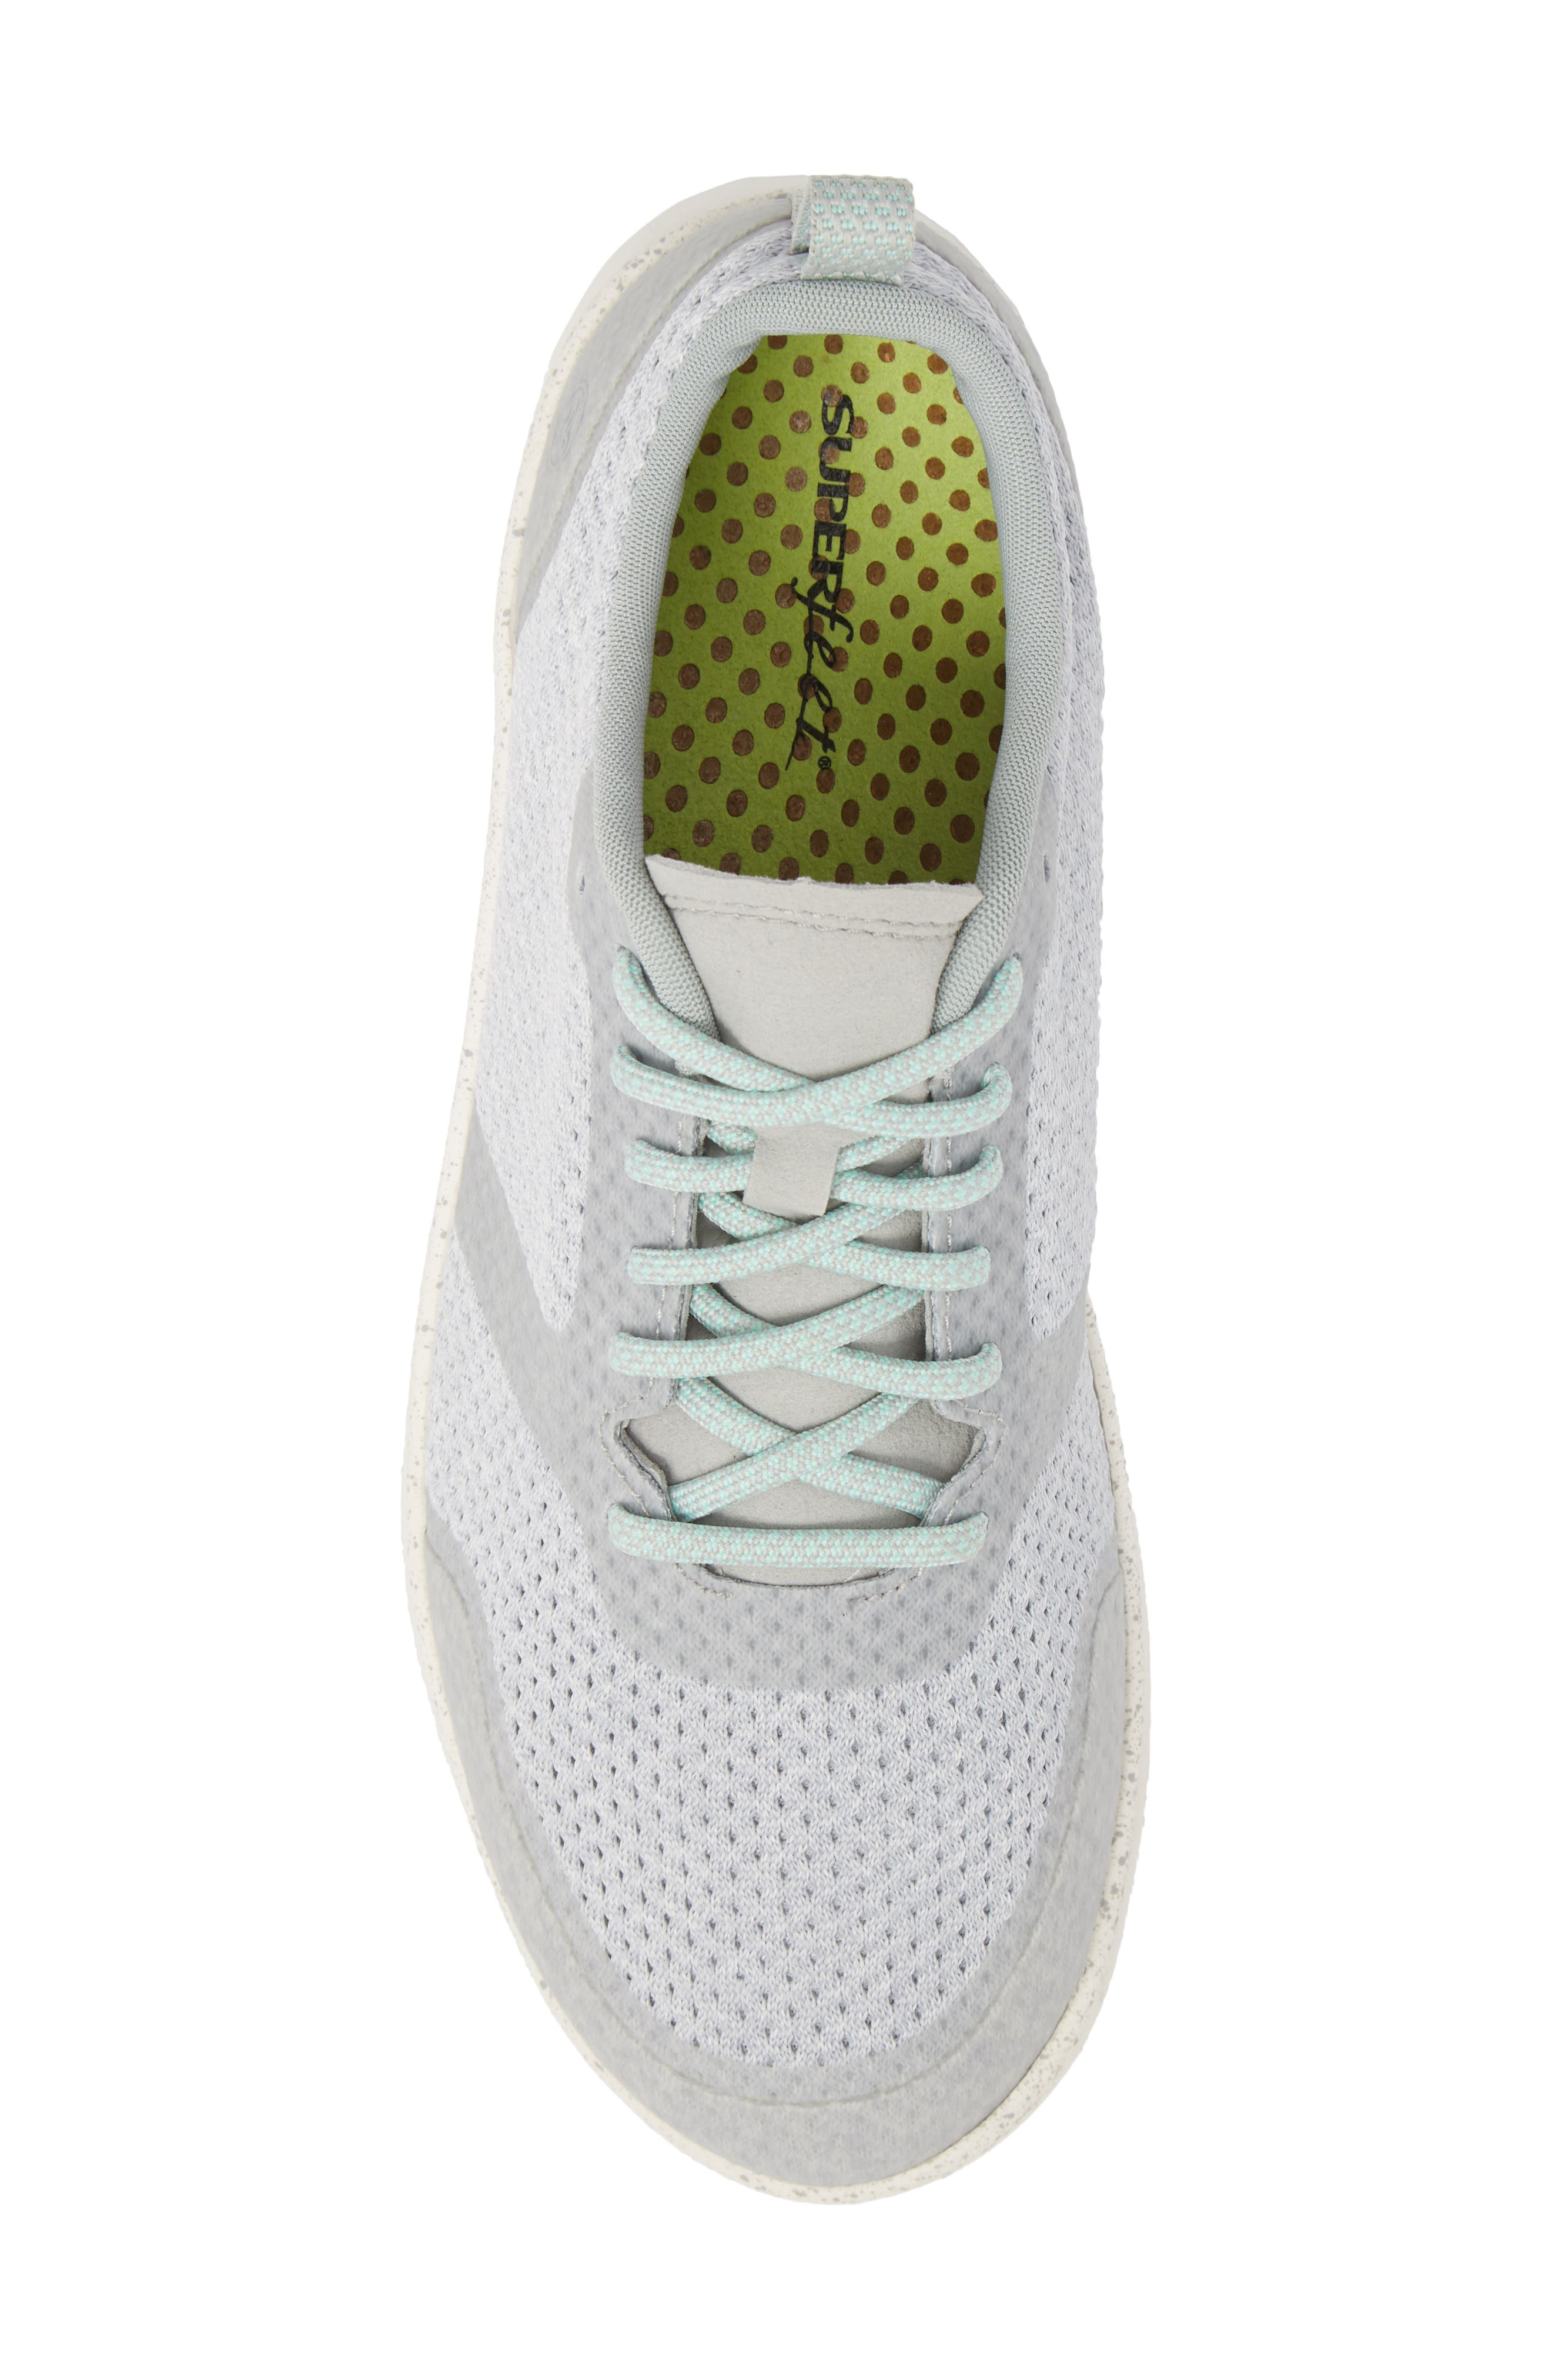 Linden Sneaker,                             Alternate thumbnail 5, color,                             High Rise/ Yucca